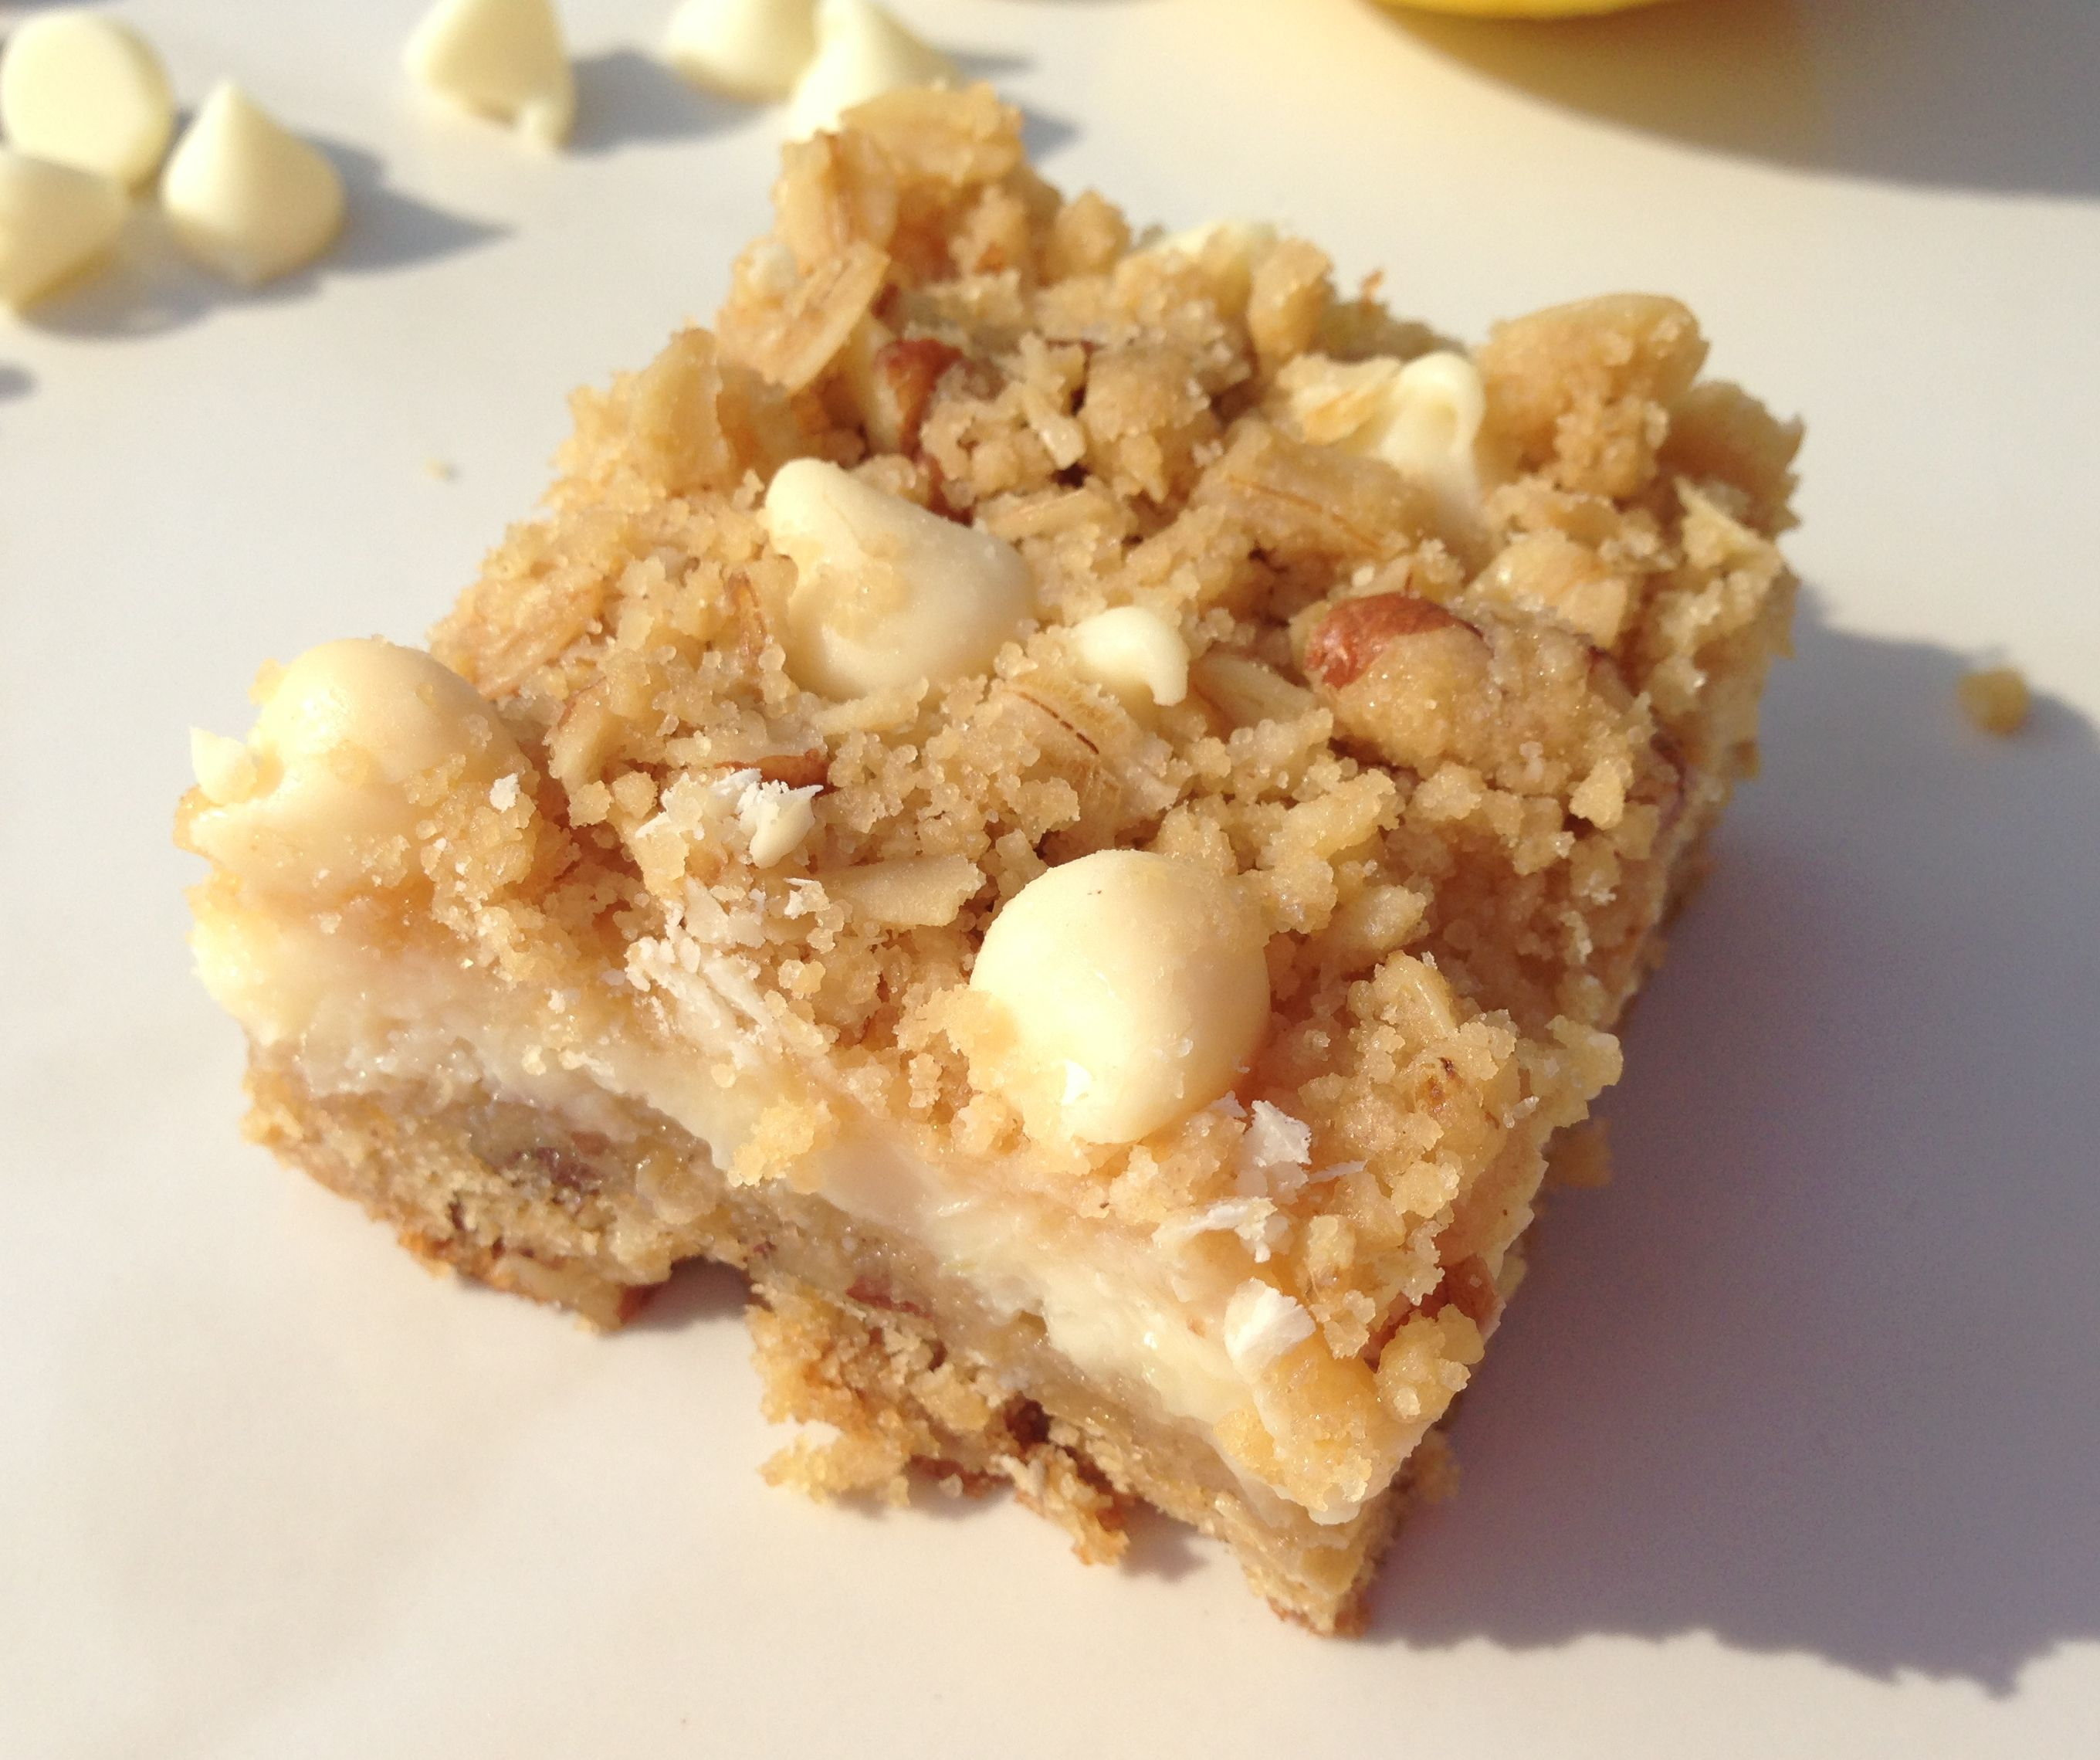 White Chocolate Lemon Streusel Bars Recipe